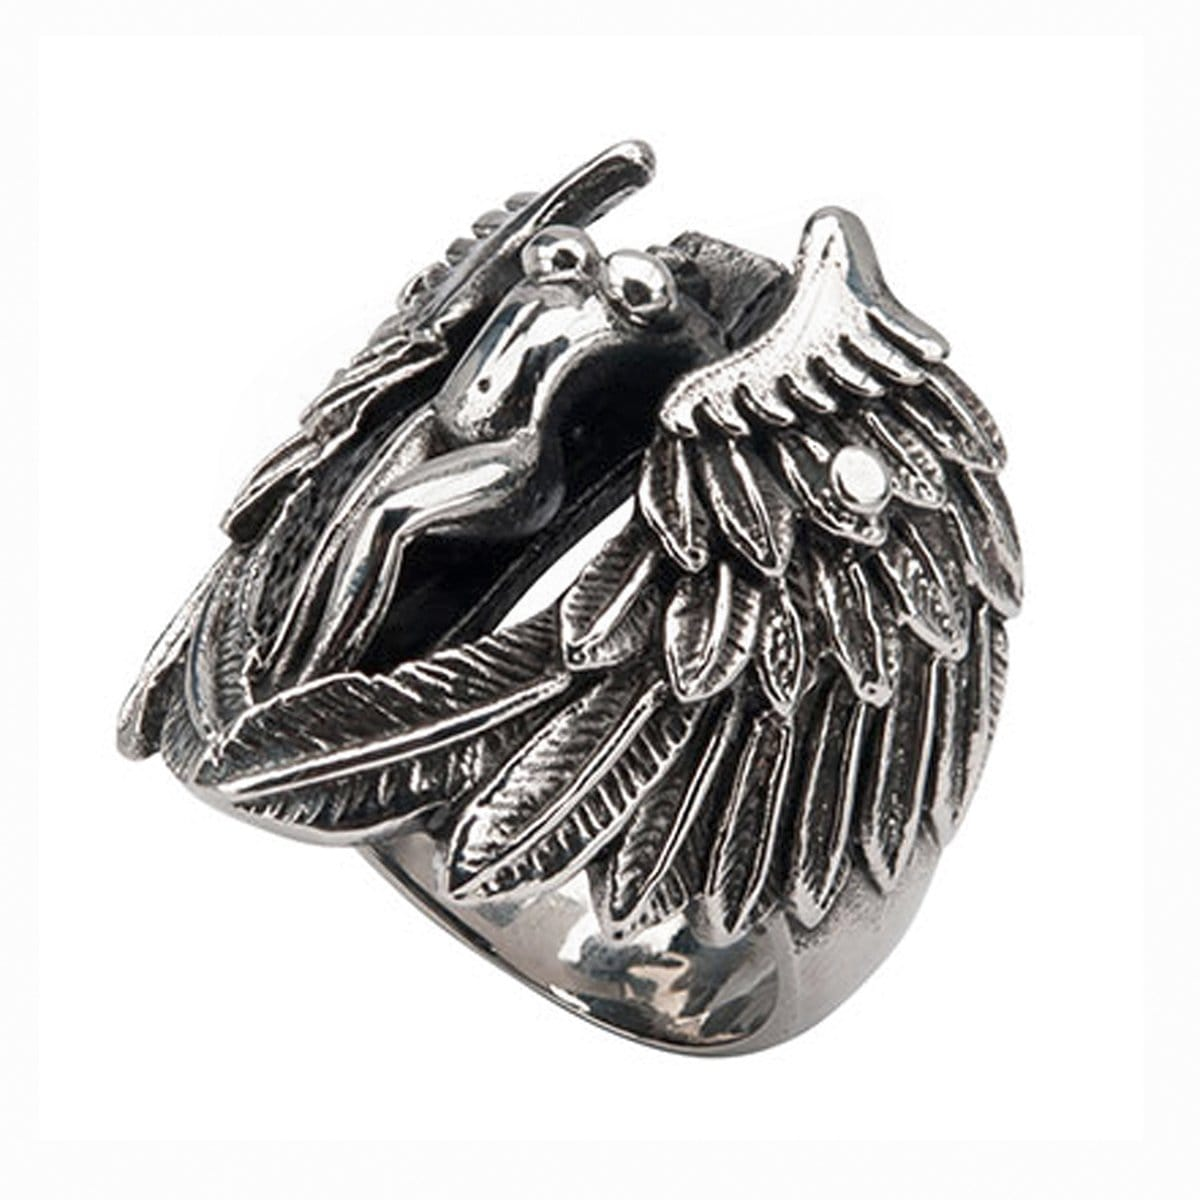 Darkened Silver Stainless Steel Angel with Cut Out Wings Ring Rings